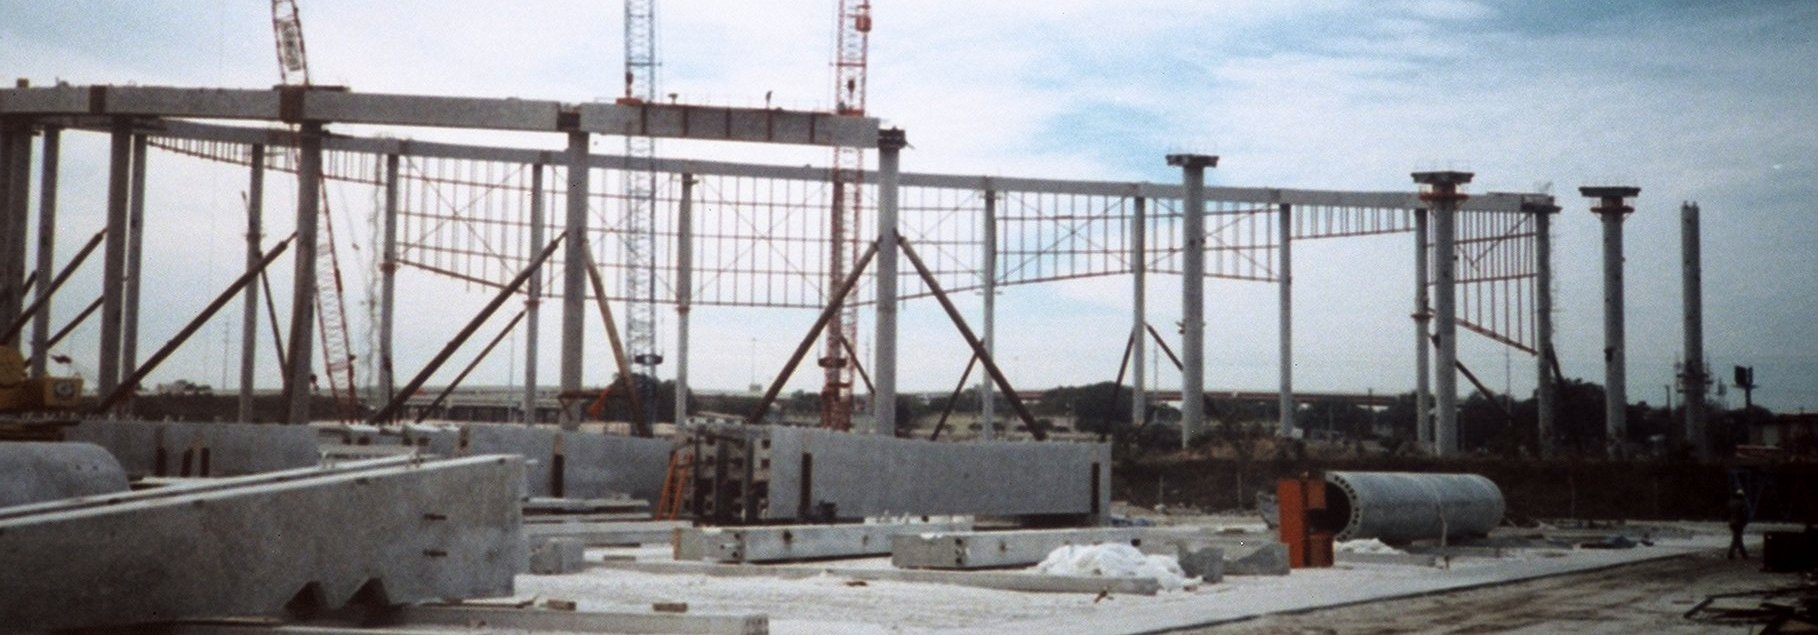 CEG Engineers | Specialty Precast Concrete Engineering and